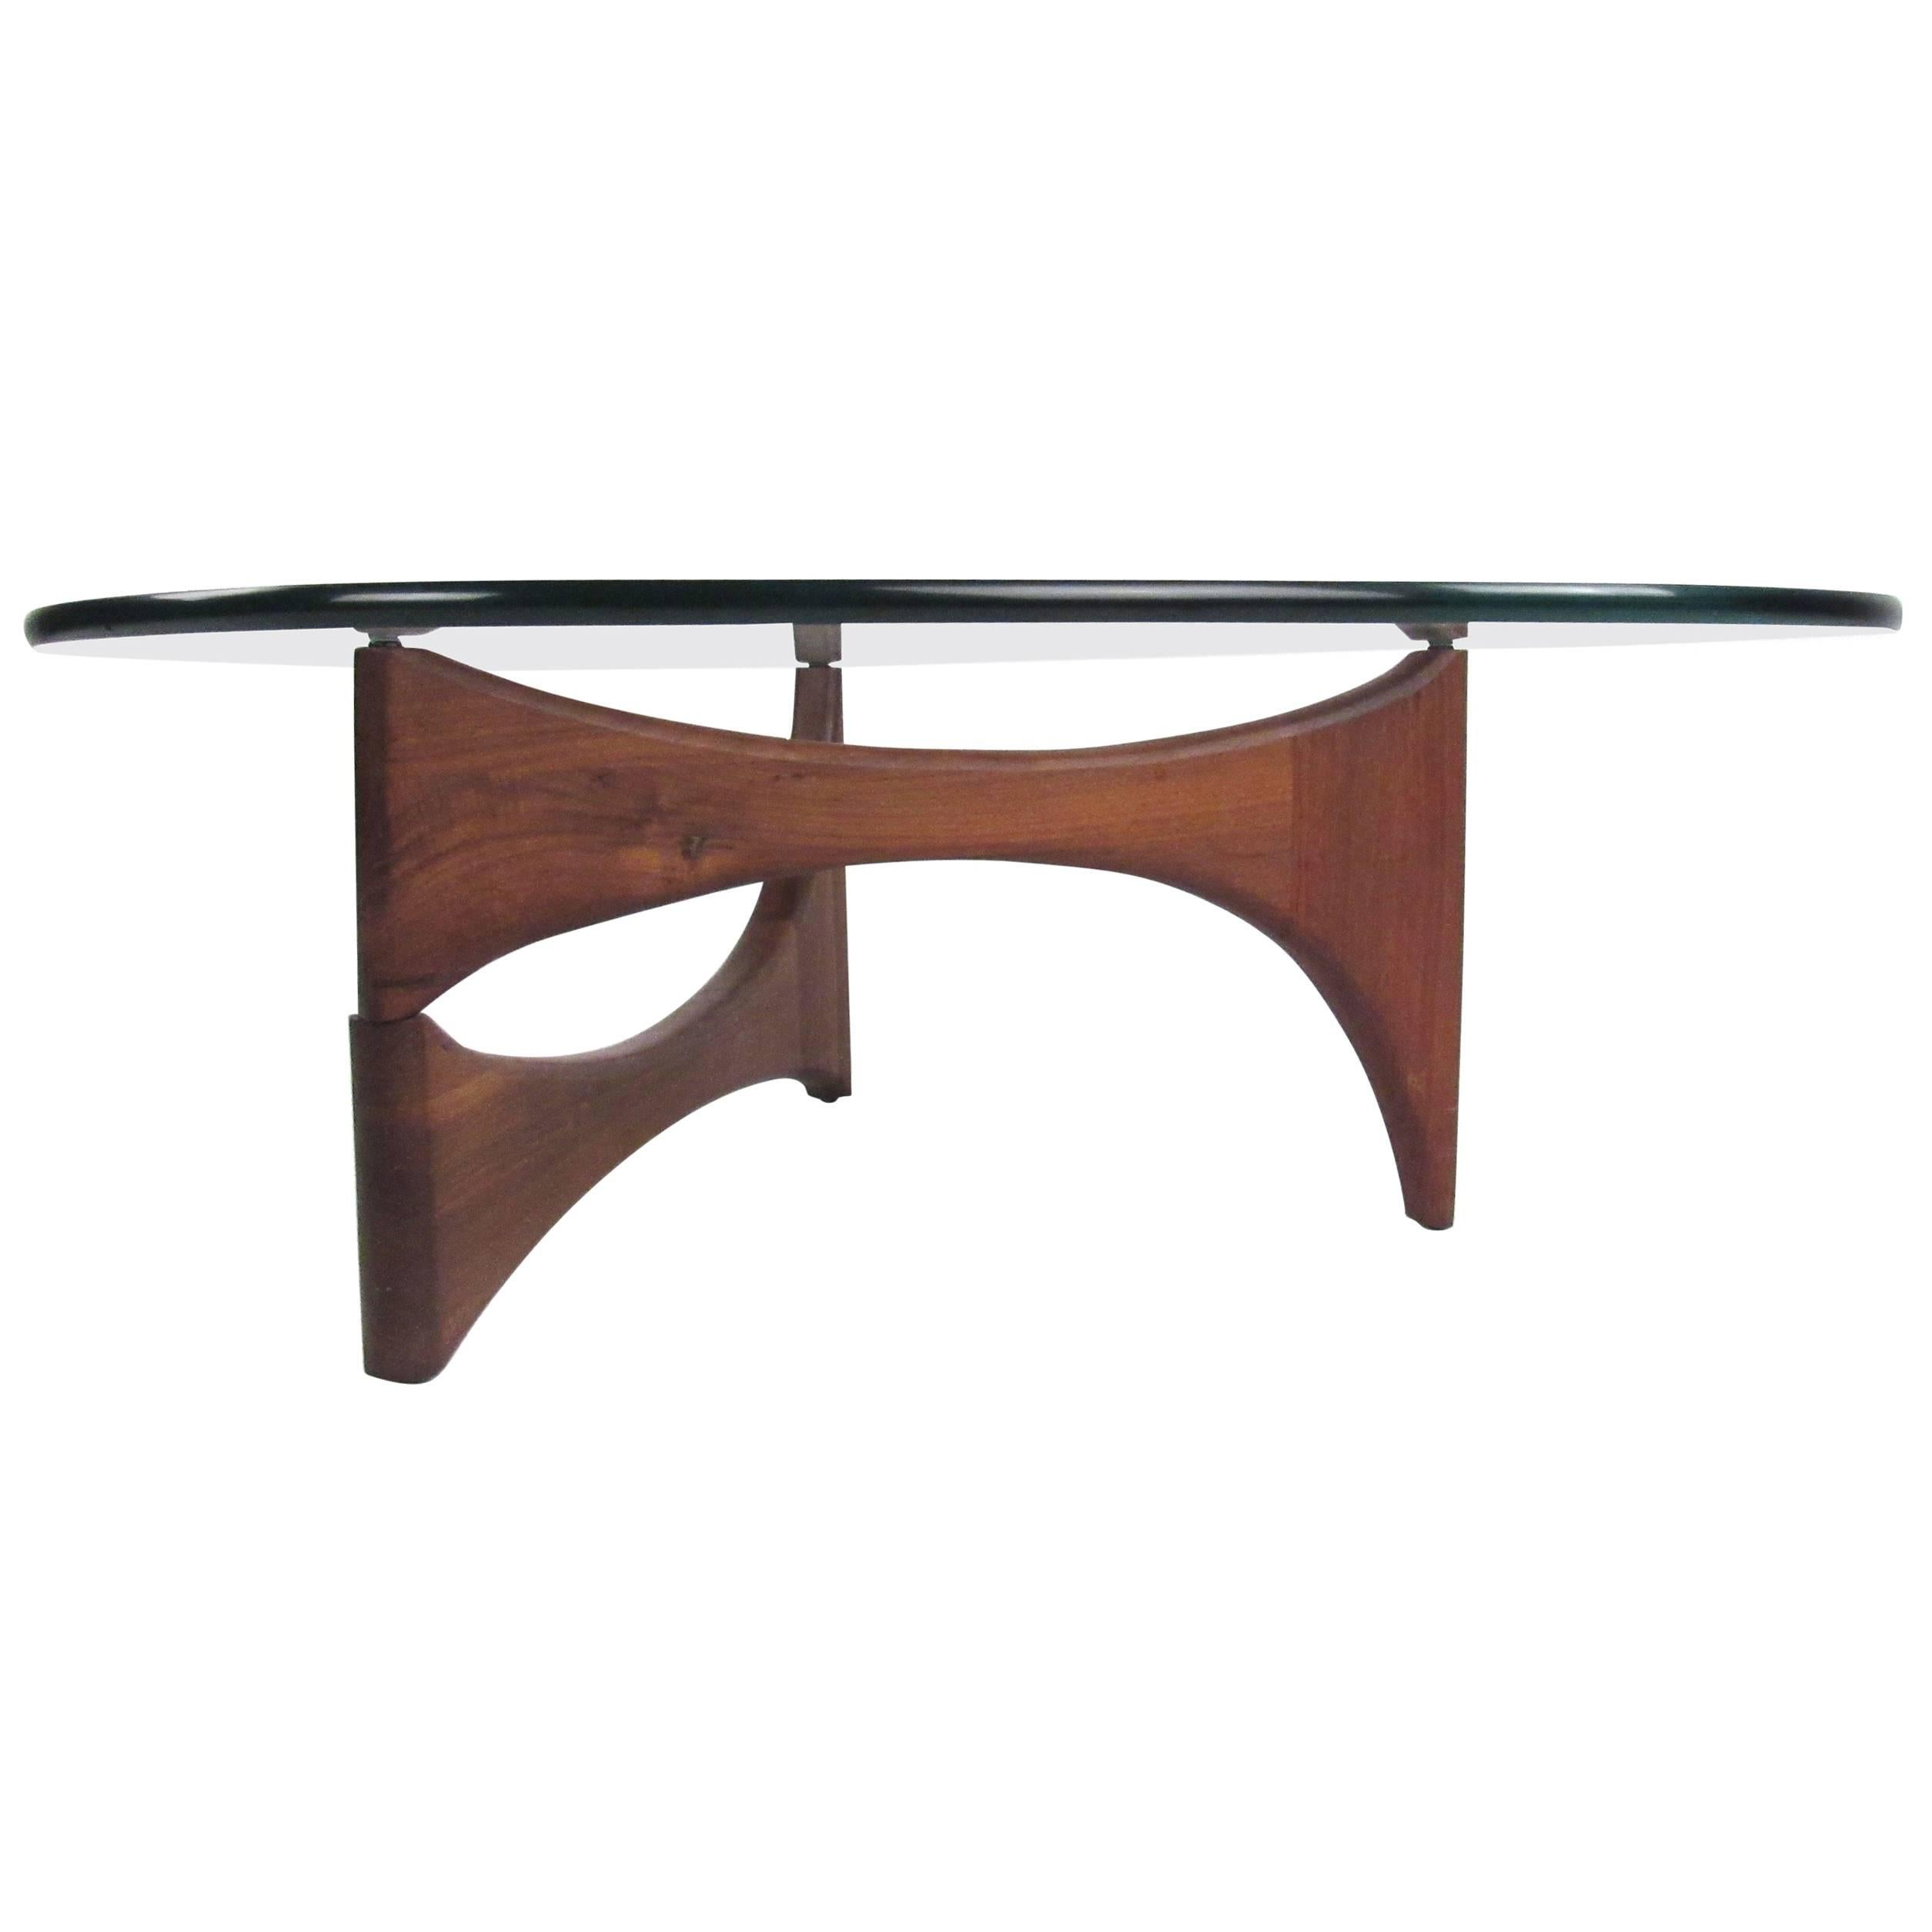 Noguchi Table Noguchi Style Triangular Glass Top Coffee Table